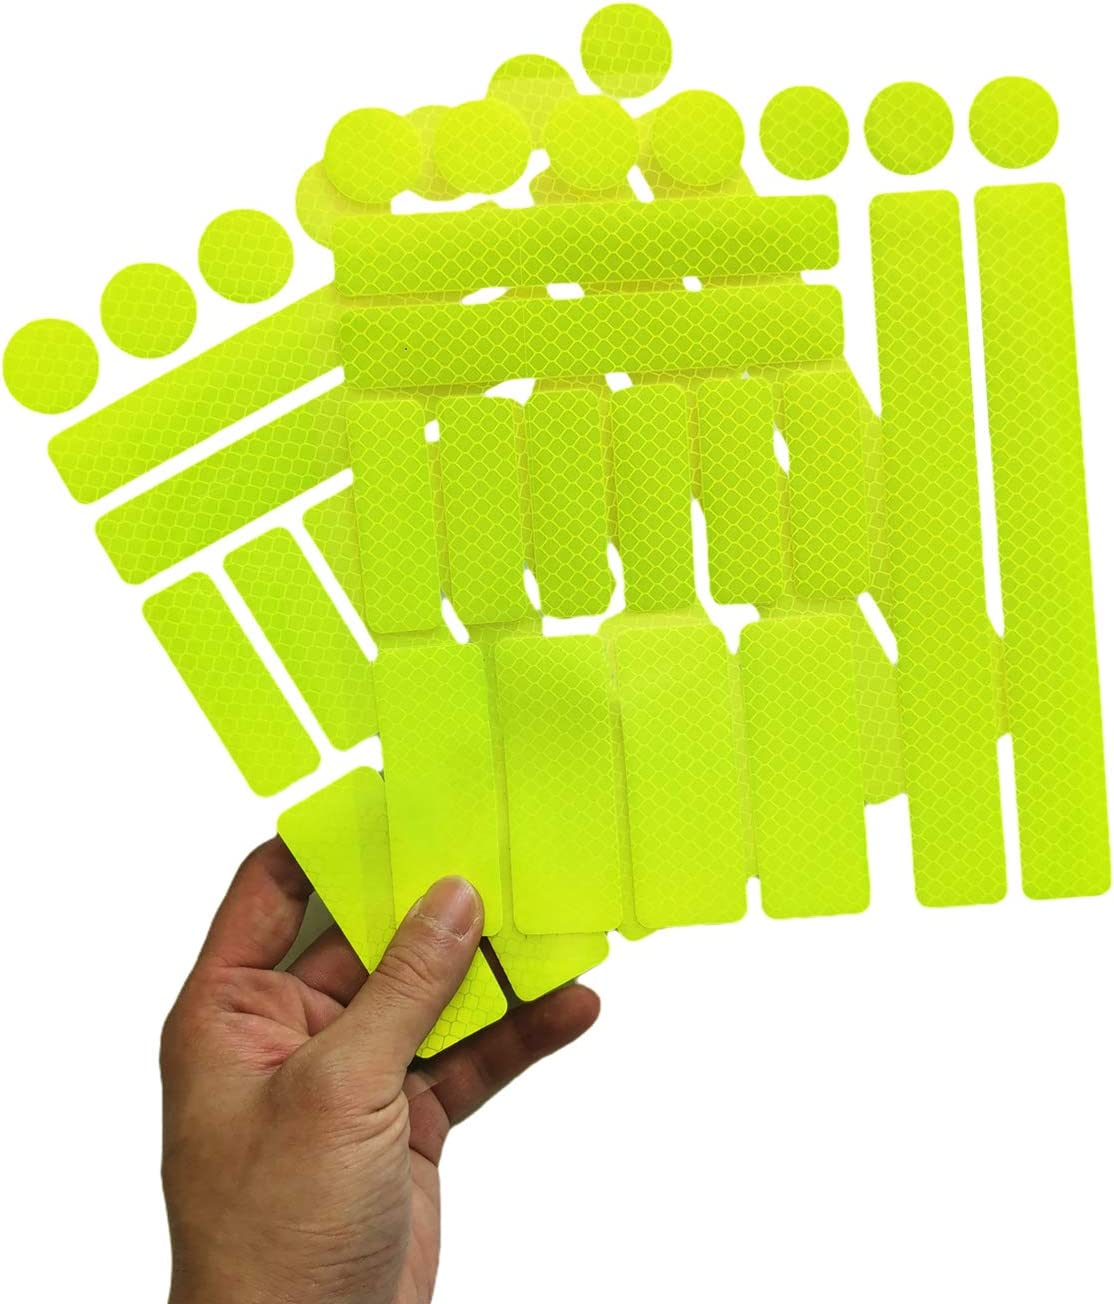 Waterproof Adhesive Reflective Decals yellow-21PCS Cars Night Safety Stickers for Helmet Motorbike Wheelchairs Hard Hat Reflective Stickers for Bicycle Bike Reflectors Hard Surfaces